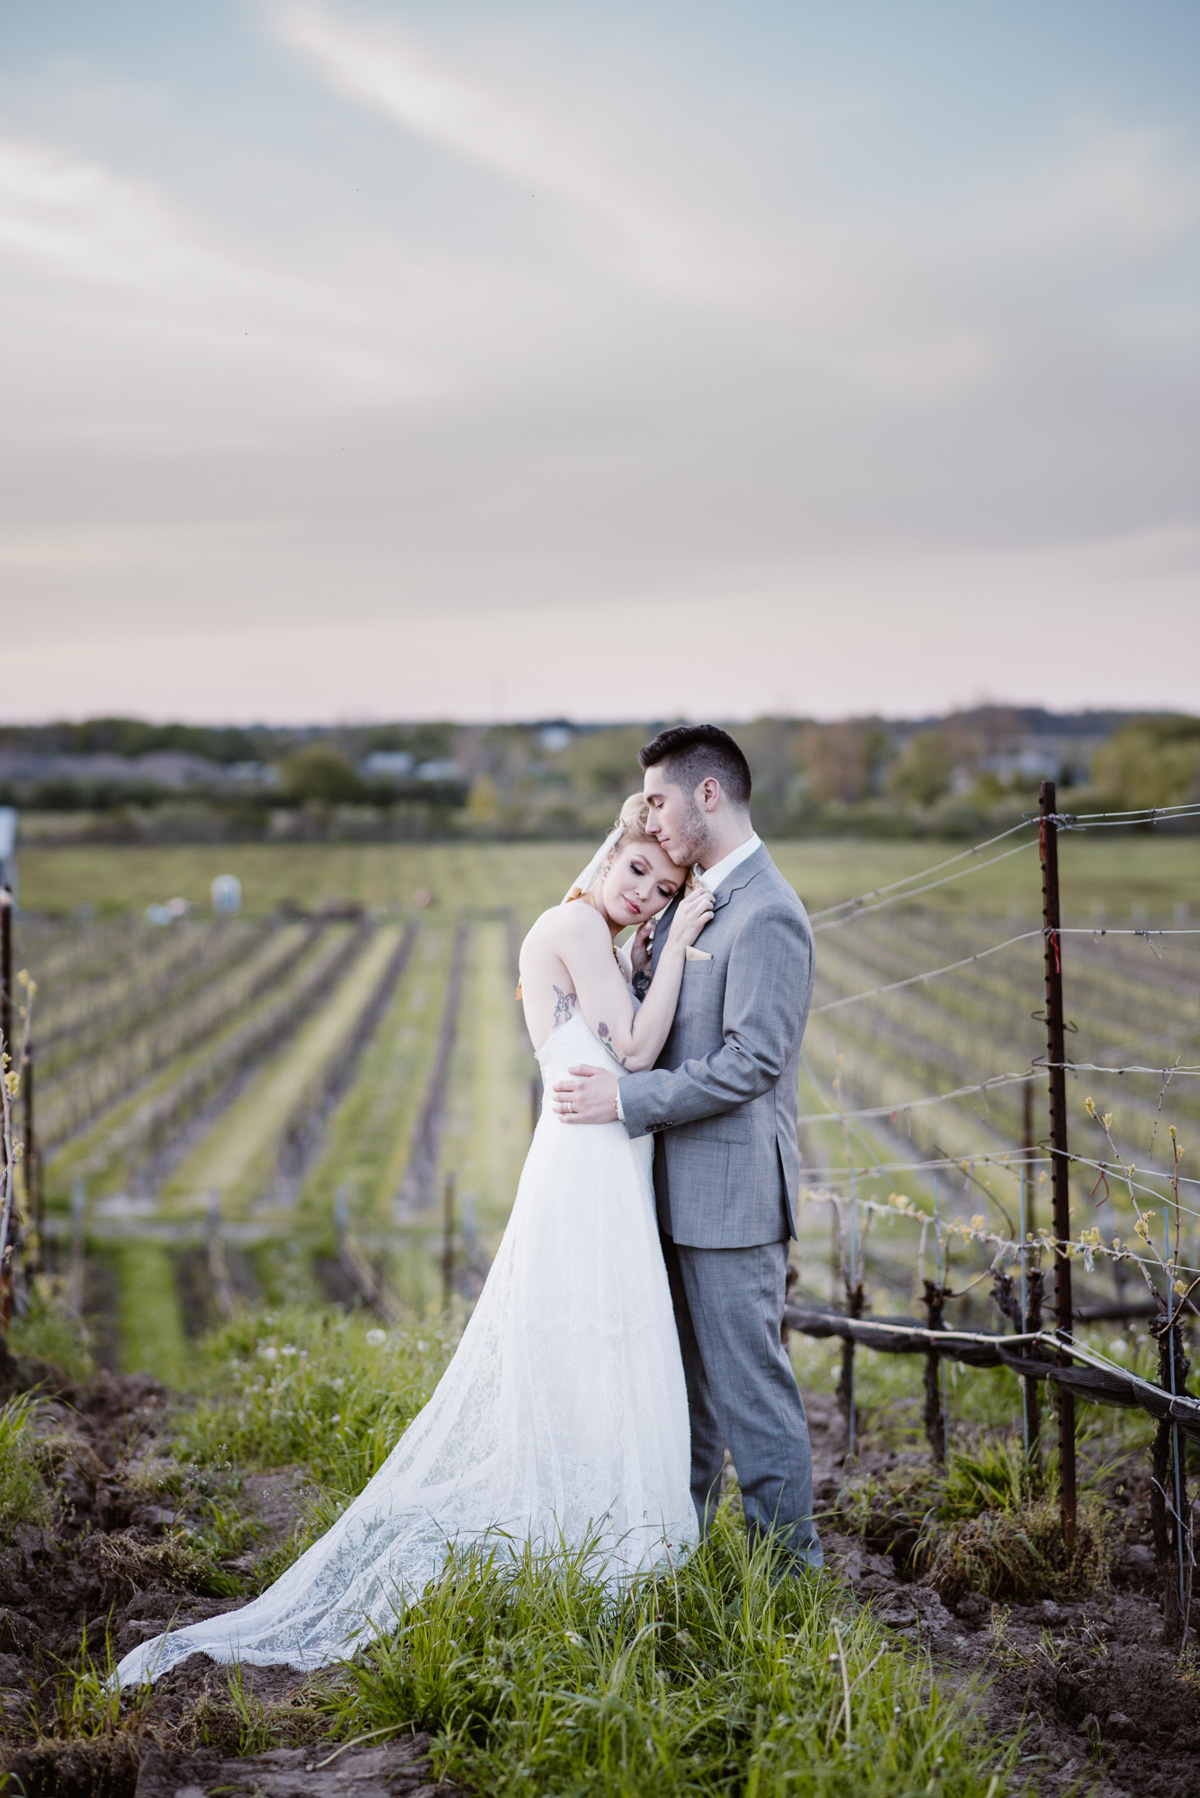 khristel-studios-vineyard-bride-swish-list-ravine-vineyard-niagara-on-the-lake-wedding-editorial-38.jpg